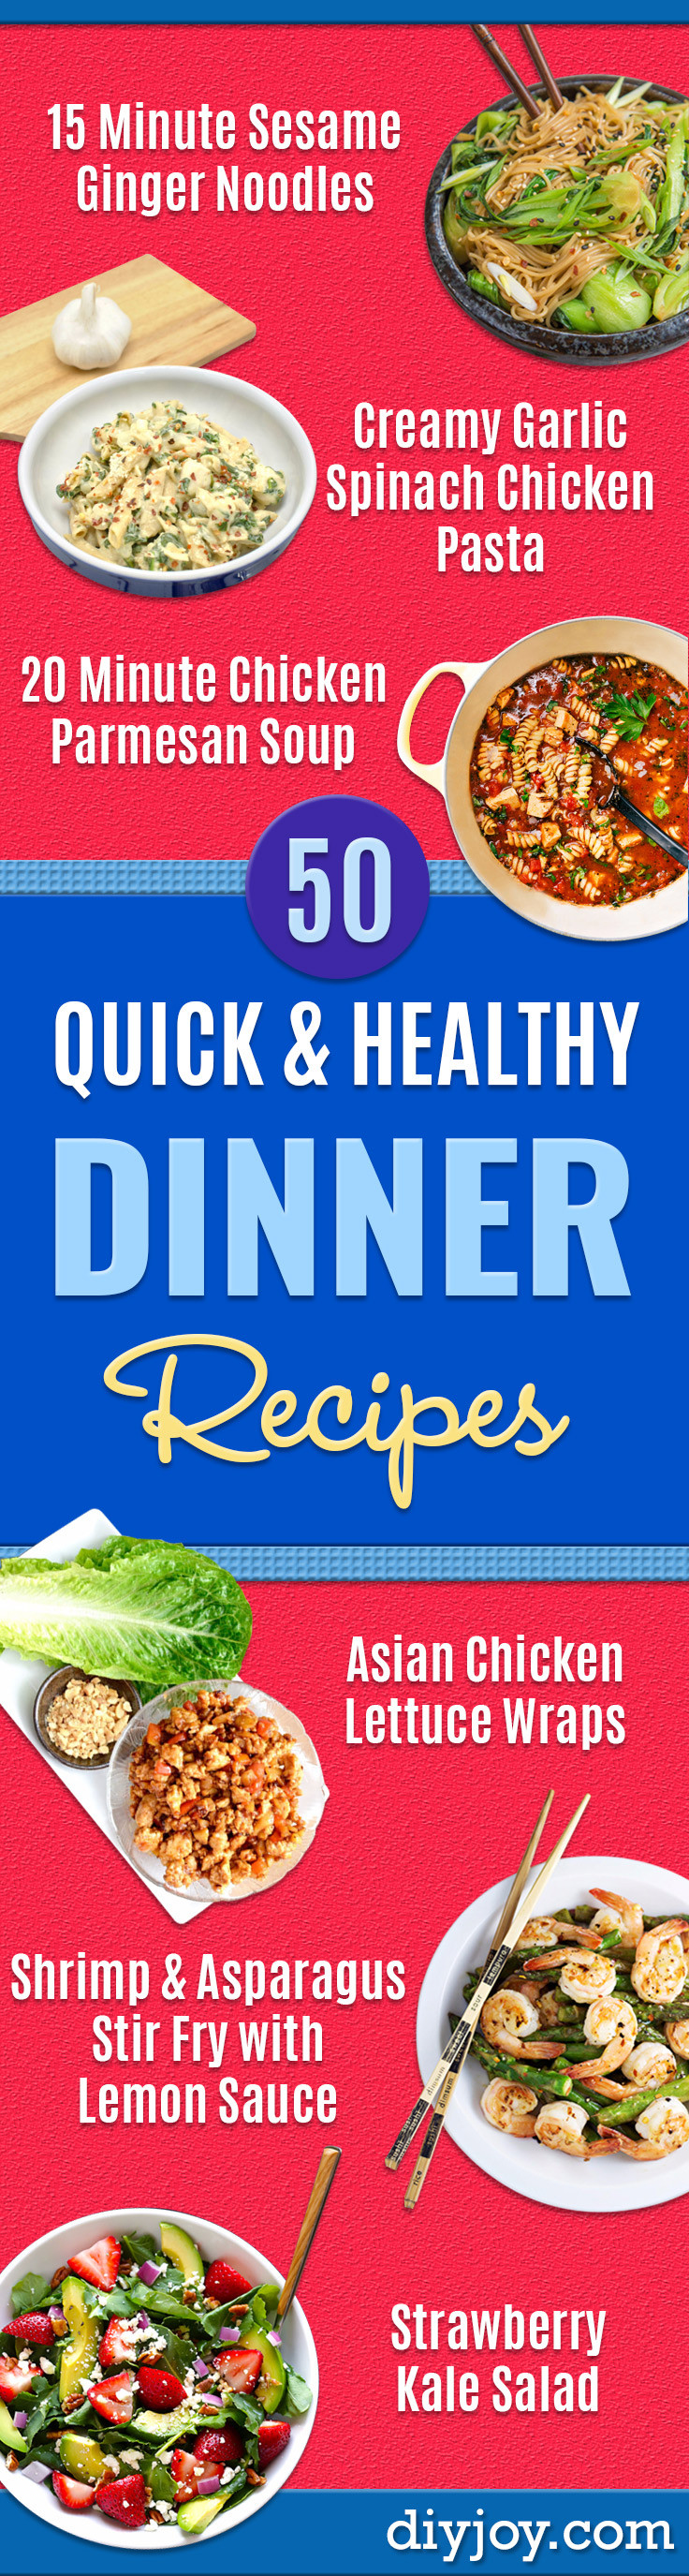 Easy Fast Healthy Dinner Recipes  50 Quick and Healthy Dinner Recipes Easy